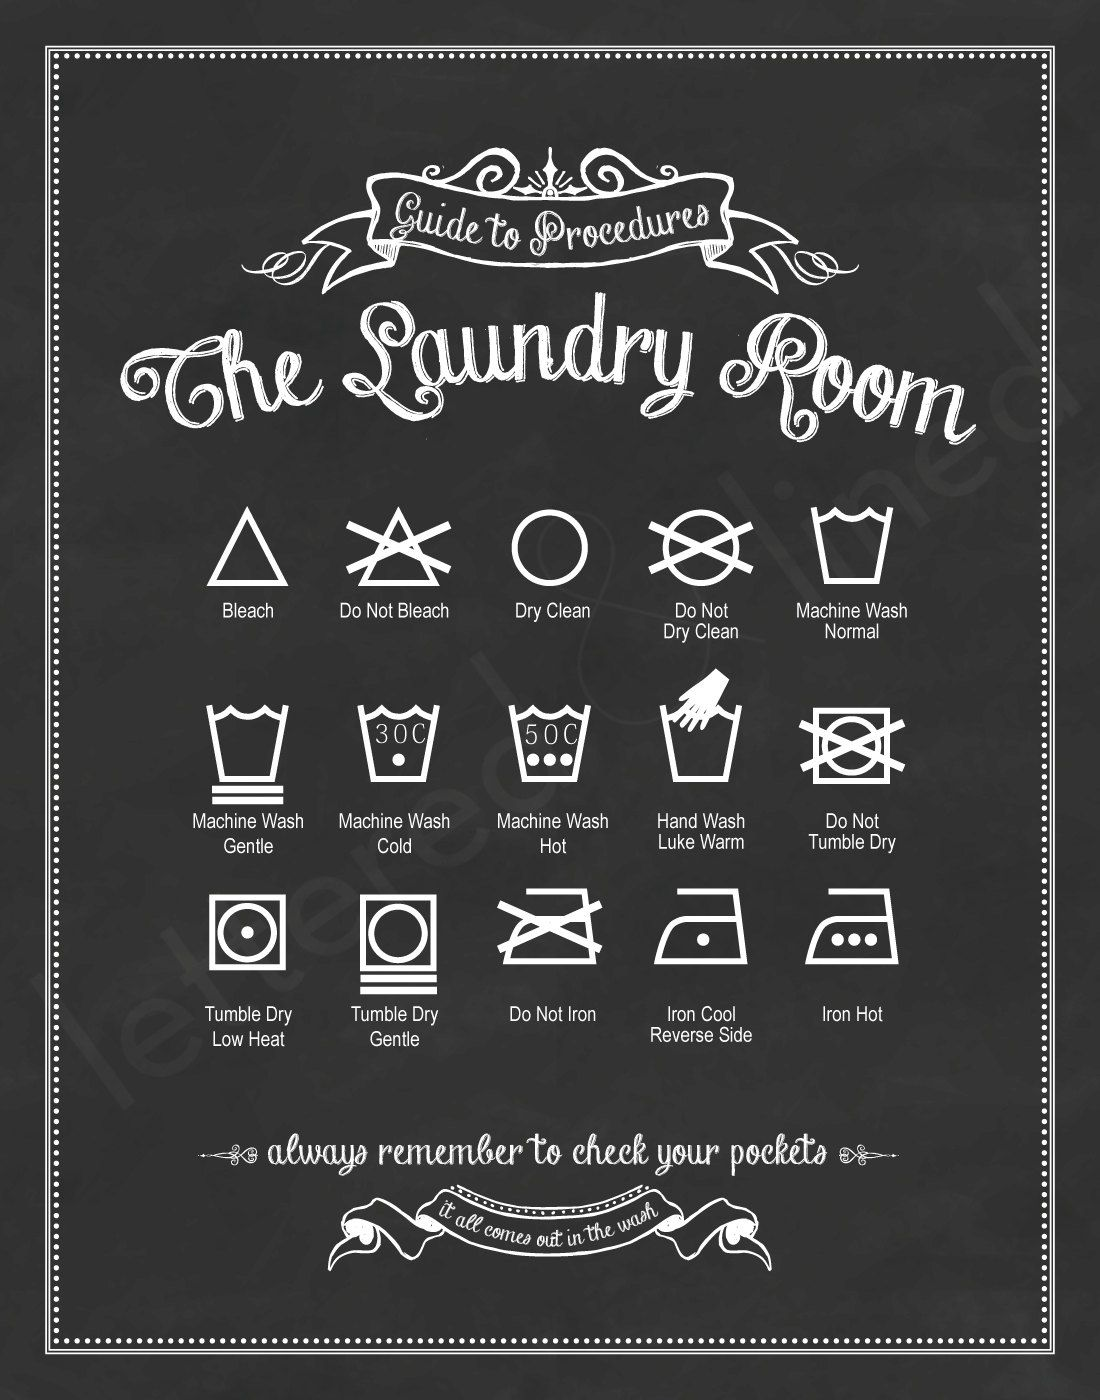 Washing Care Instruction Symbols